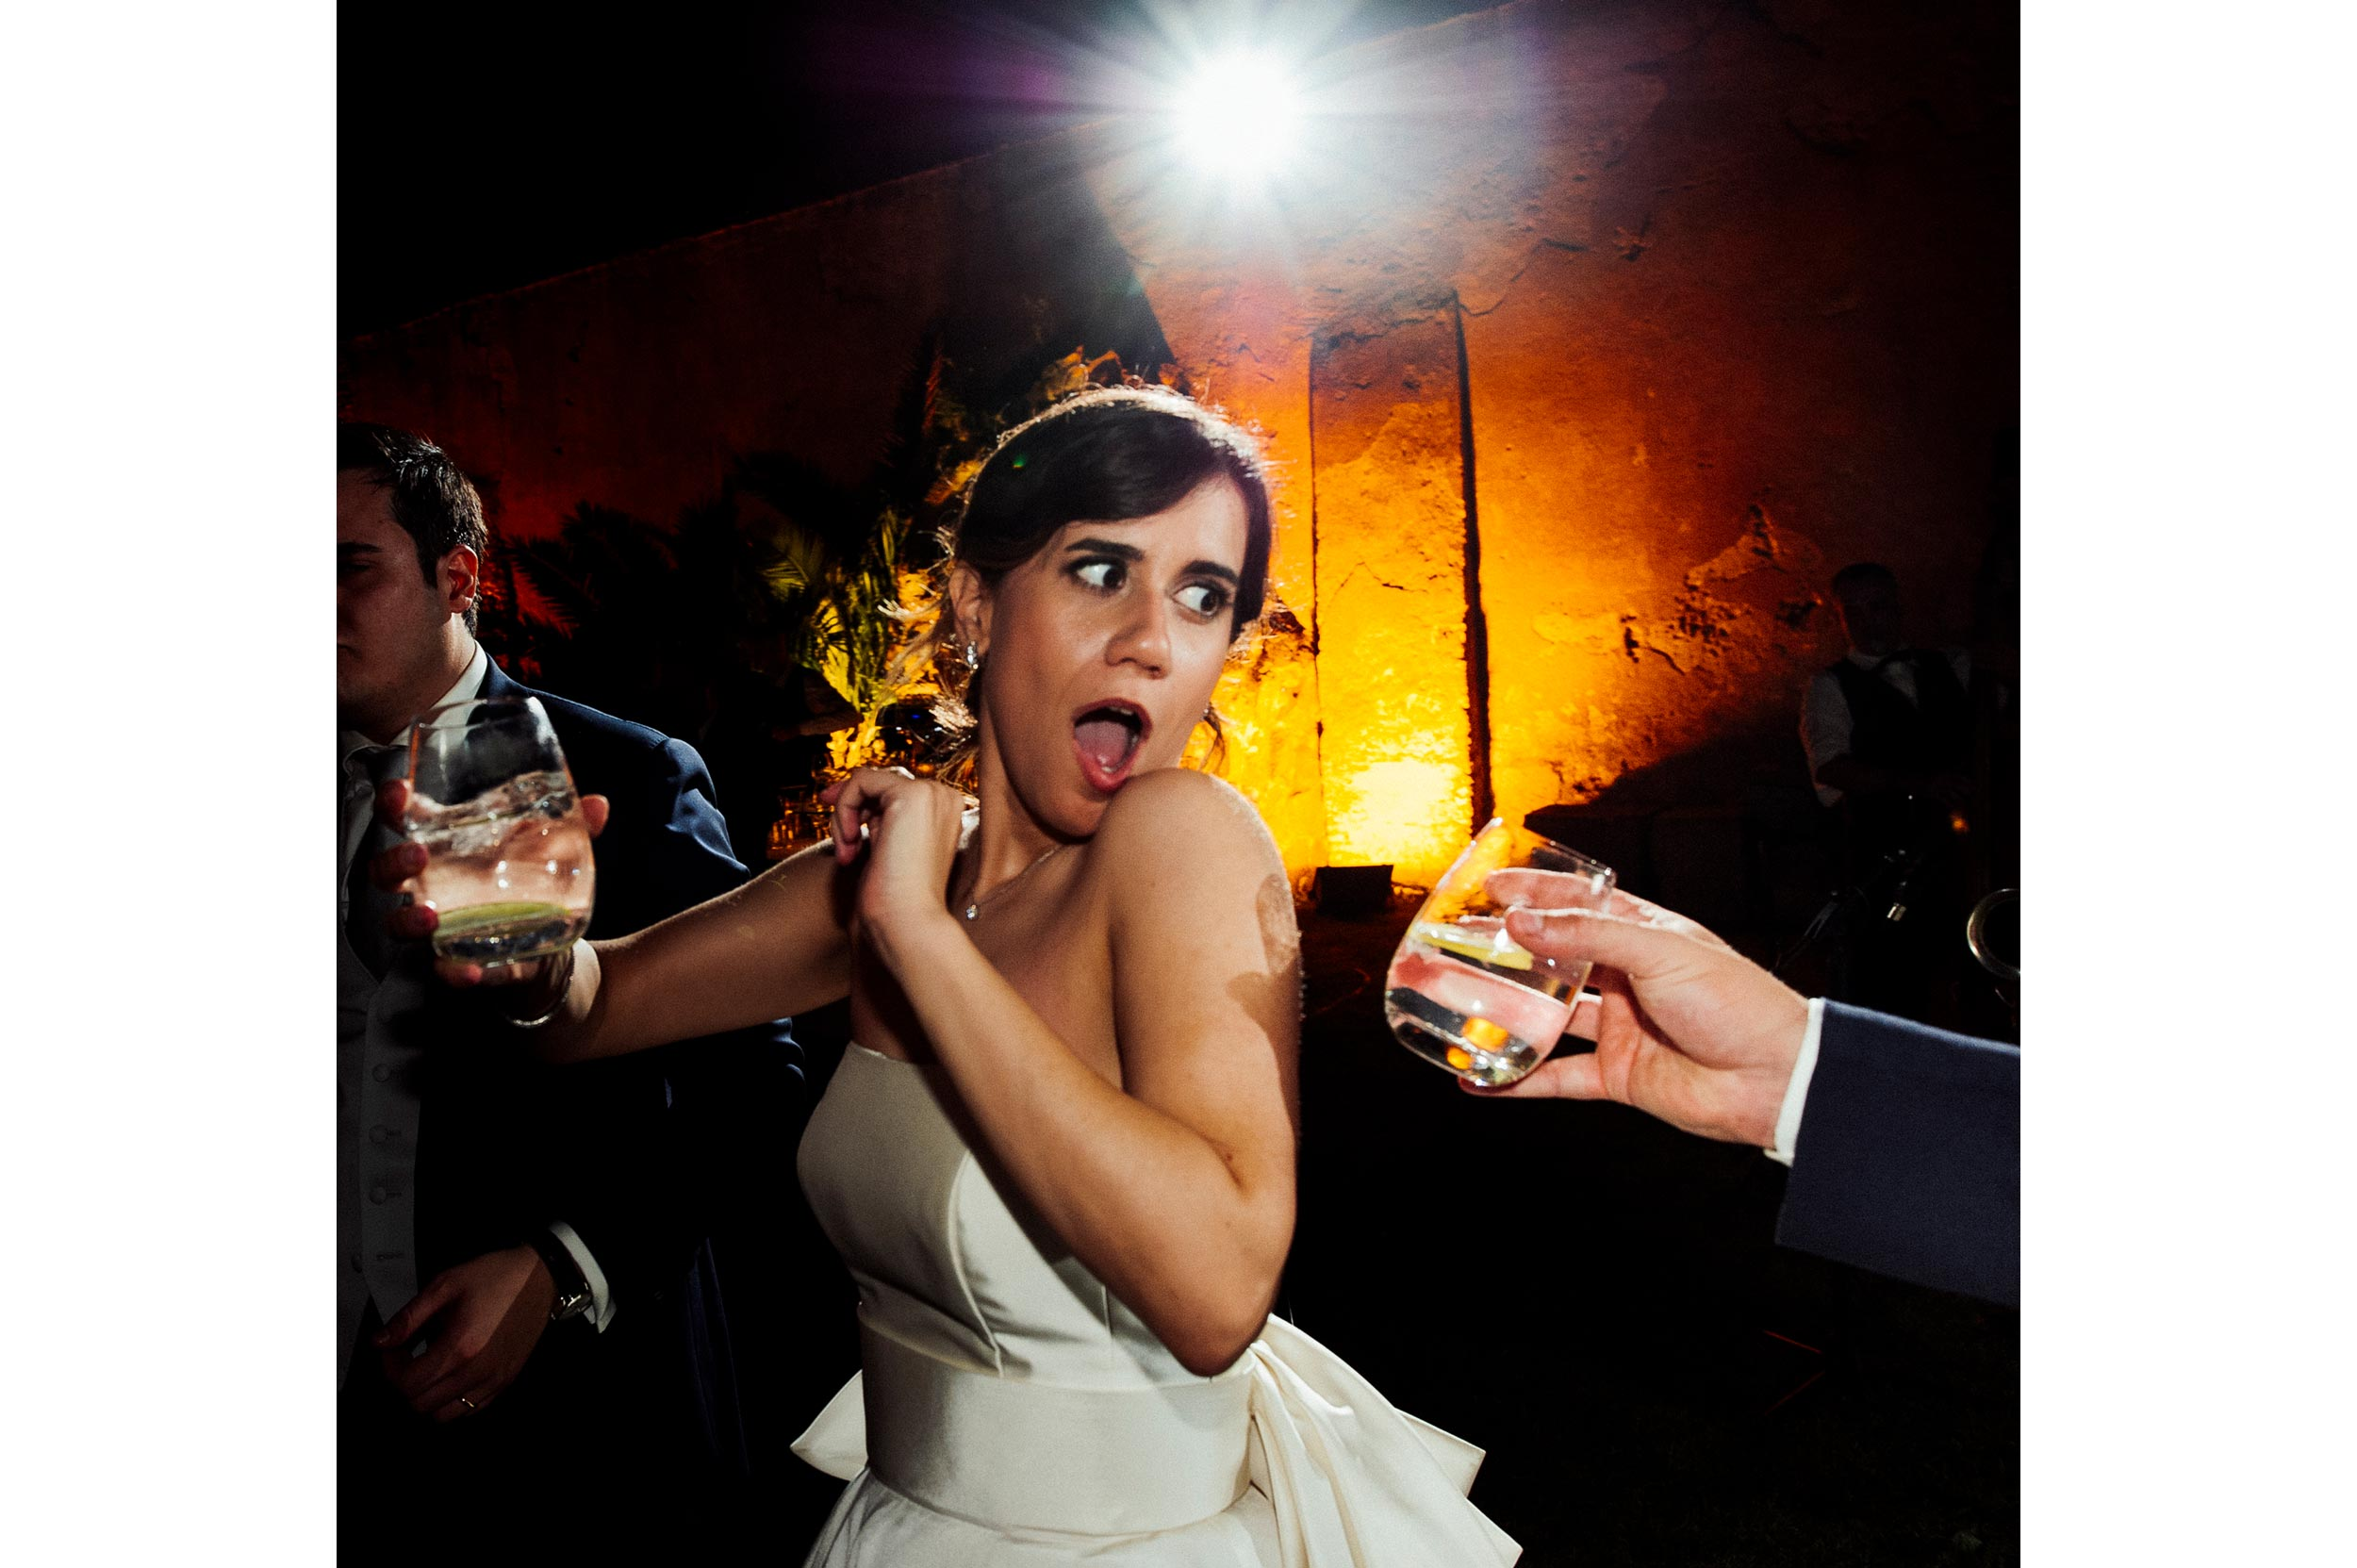 Bride refusig water during wedding party candid wedding photography by Alessandro Avenali